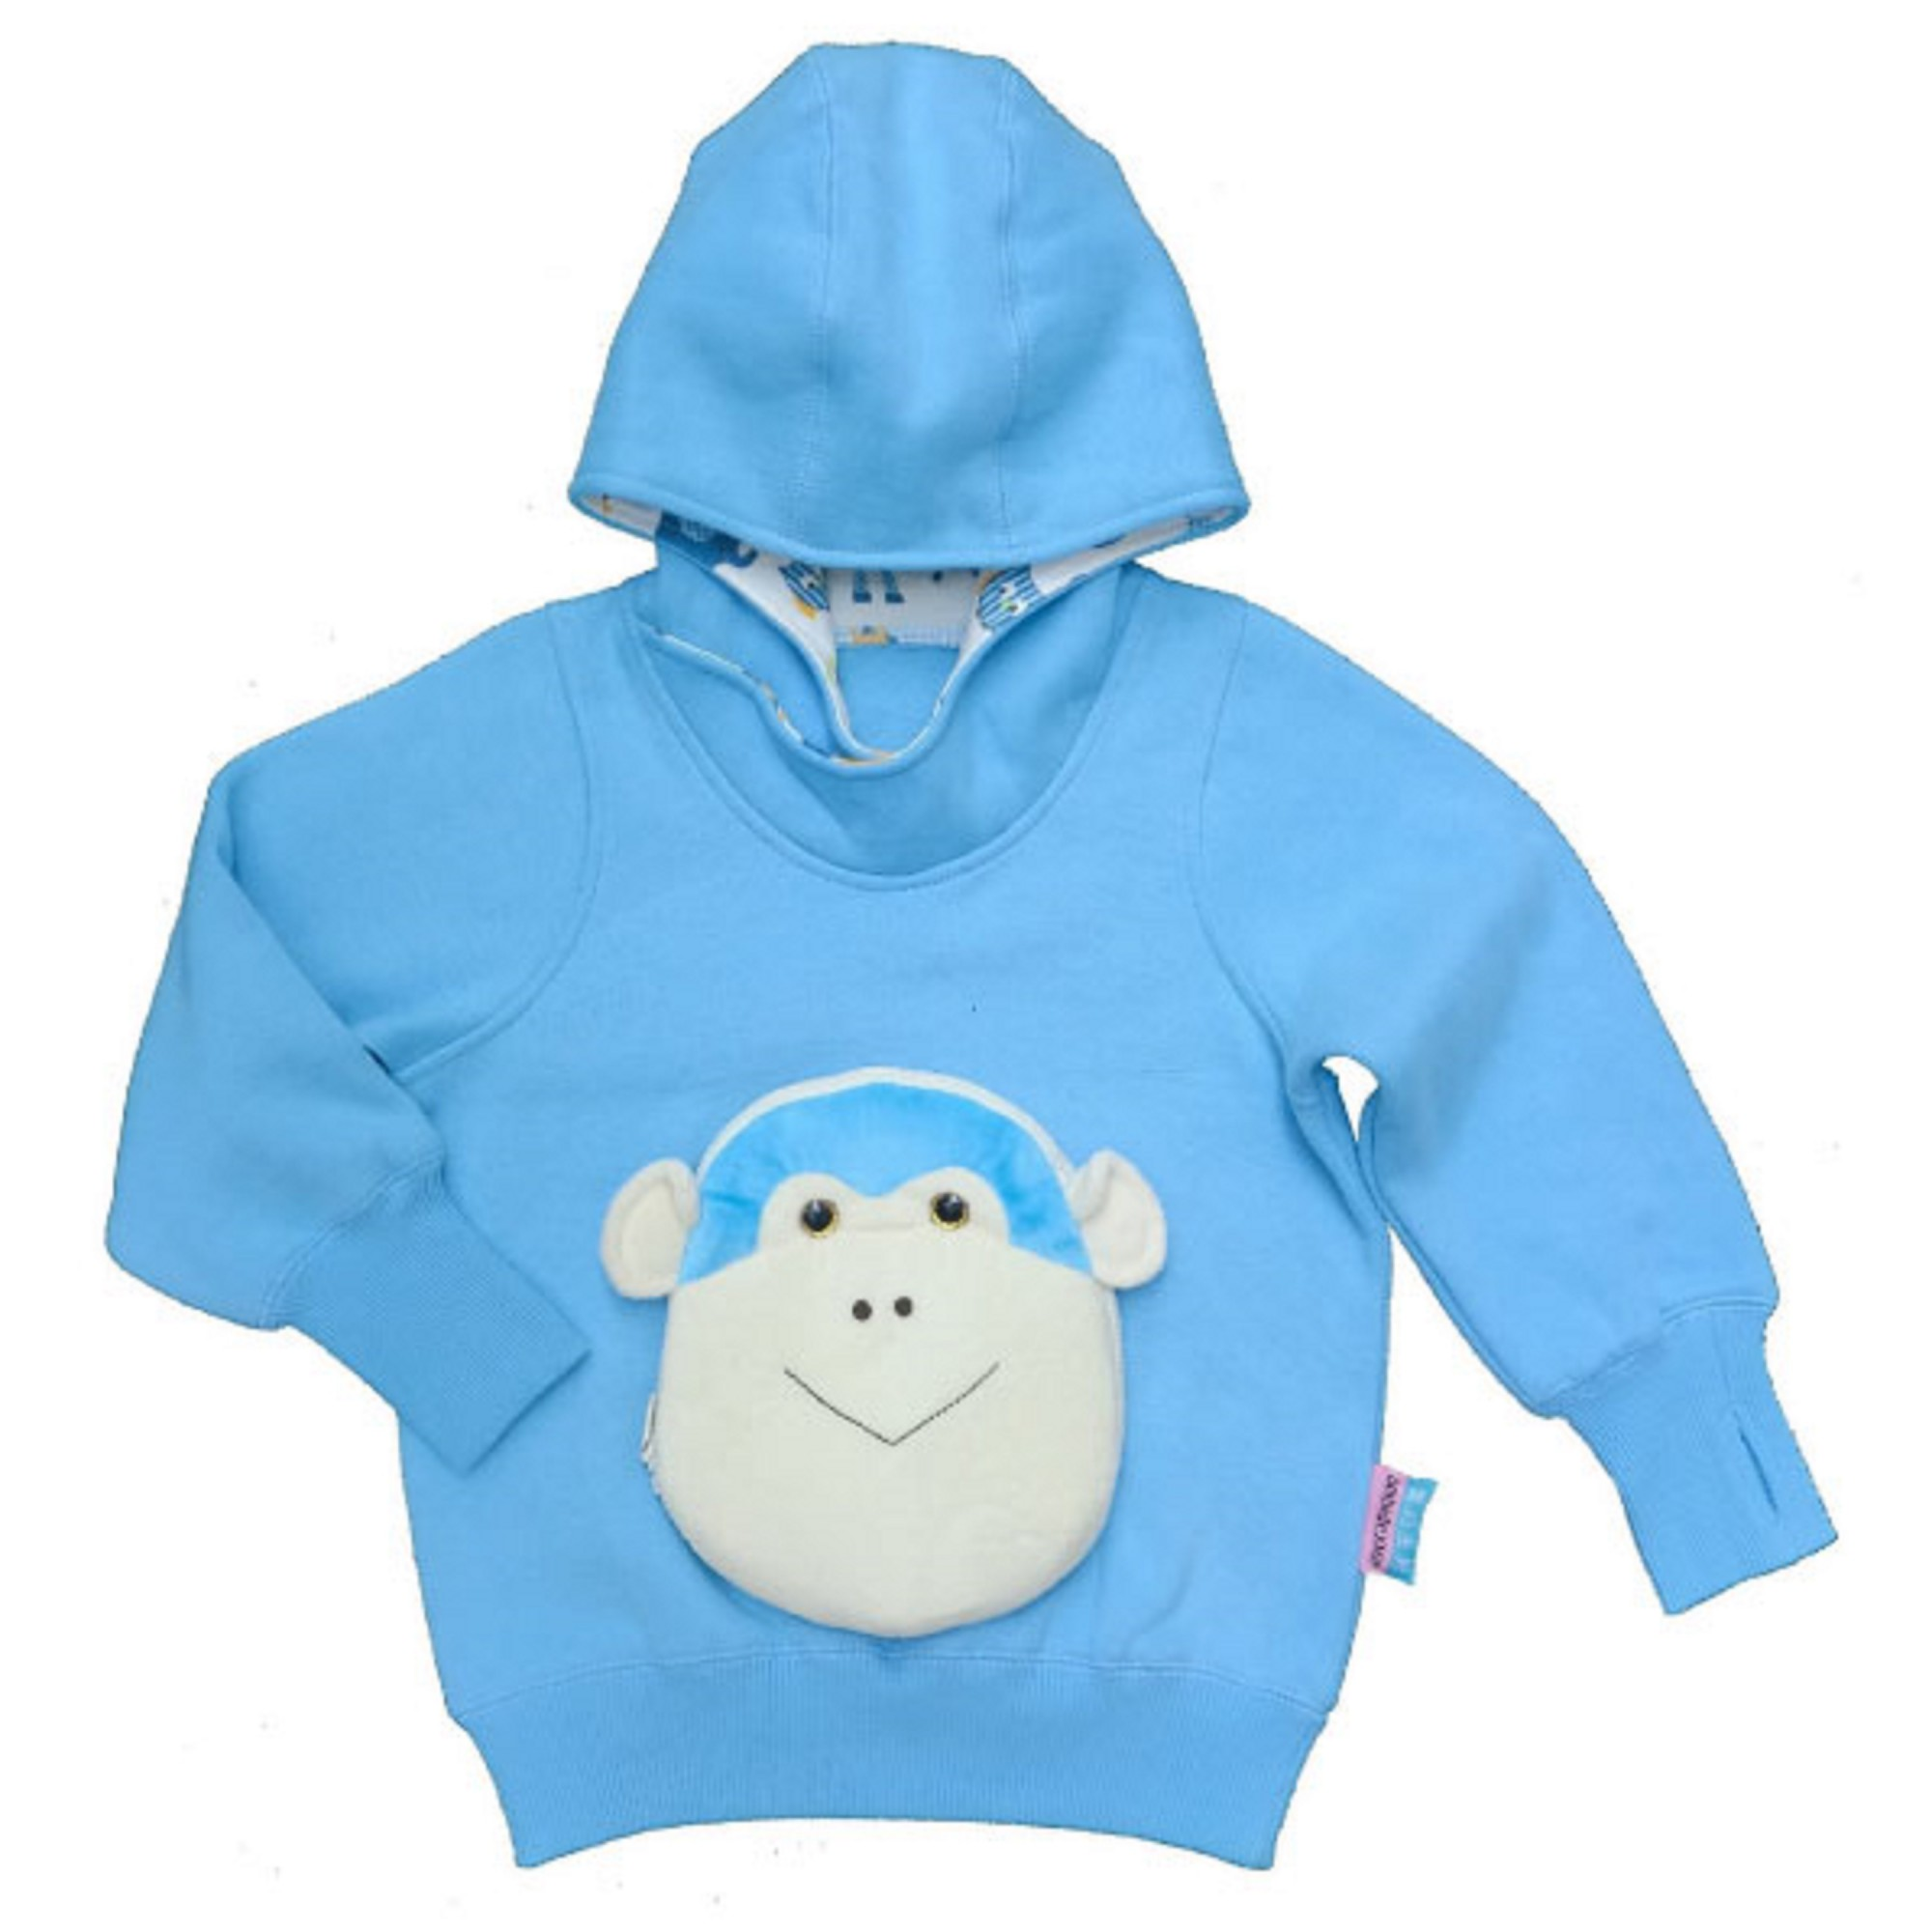 monkey face off hoodies - FOH1712